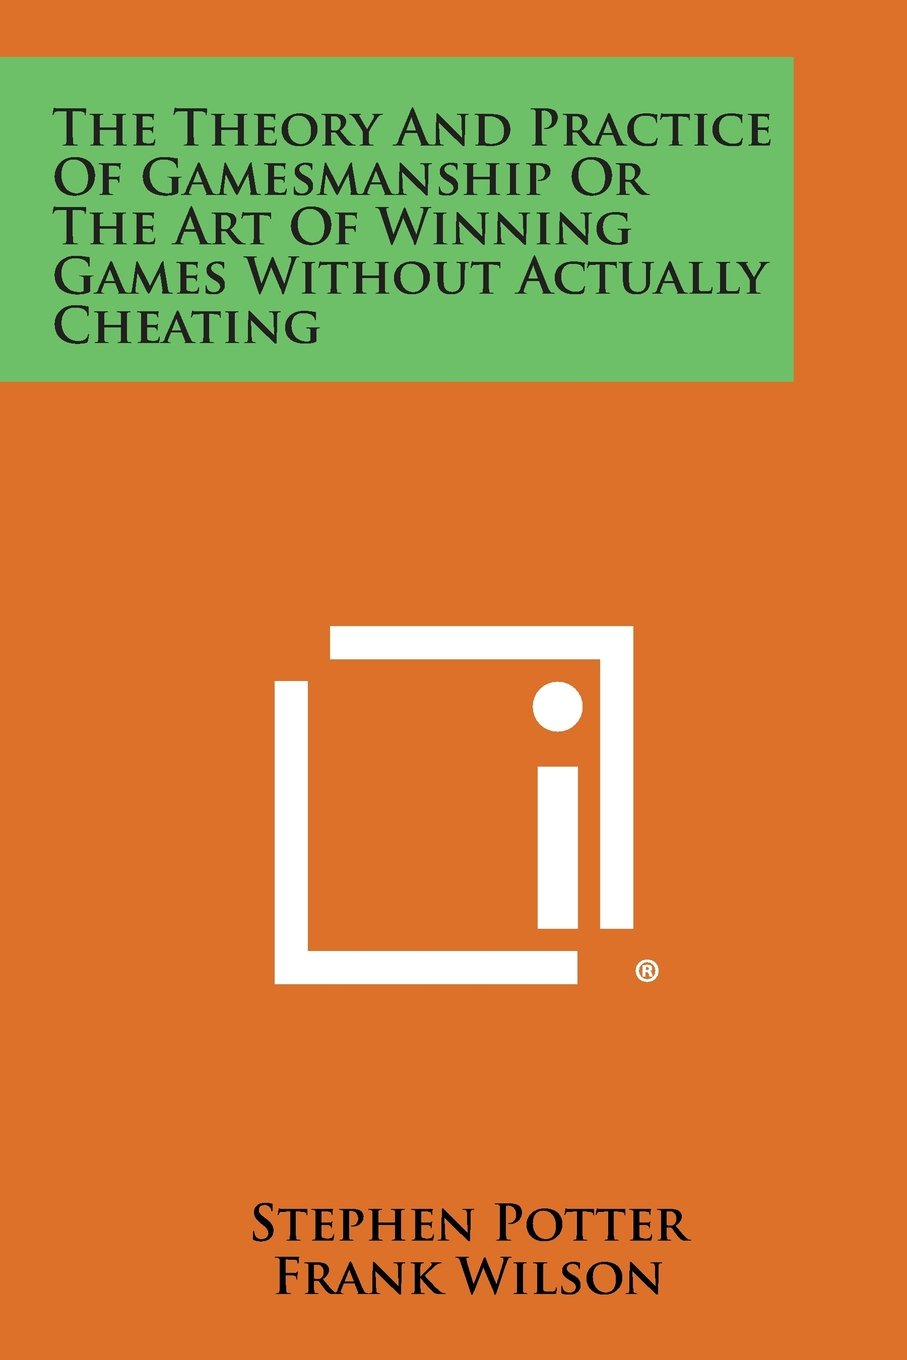 The Theory and Practice of Gamesmanship or the Art of Winning Games Without Actually Cheating pdf